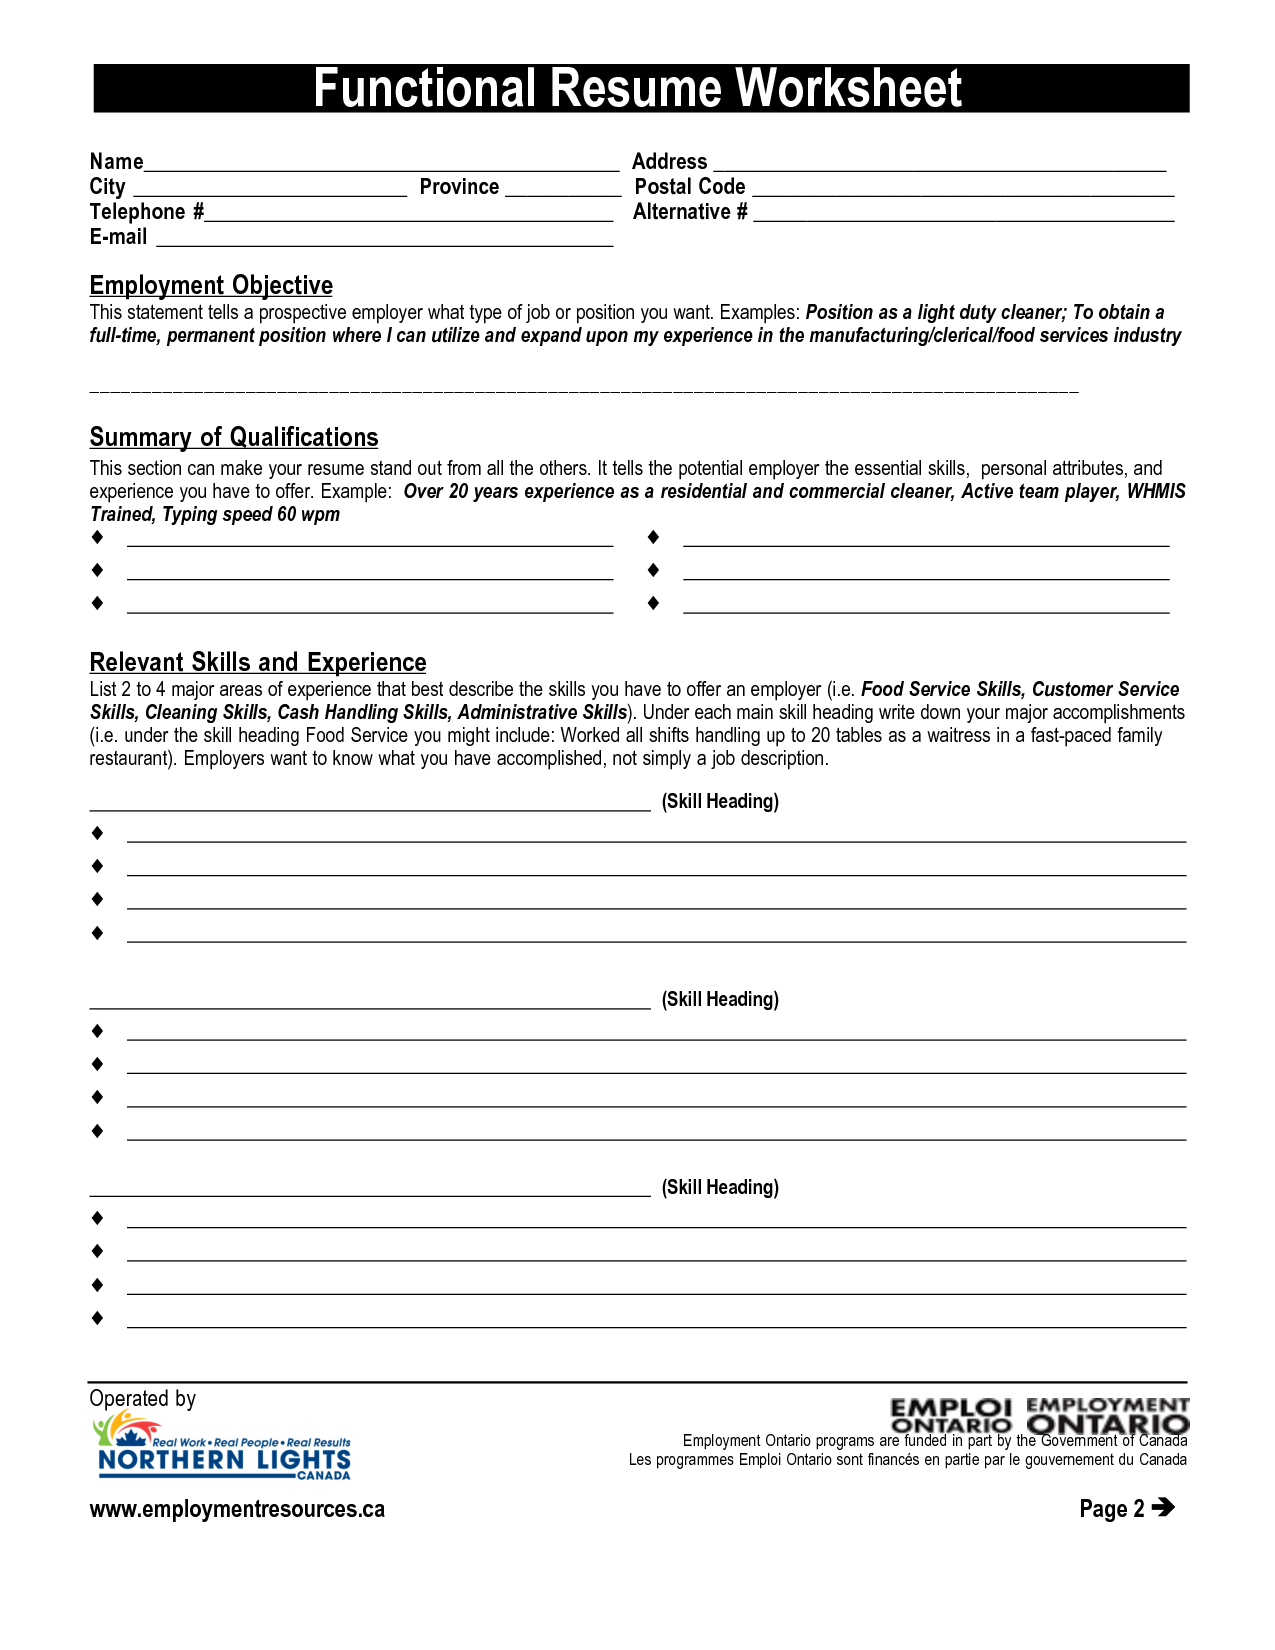 Resume Worksheet Printable And High School Template Building